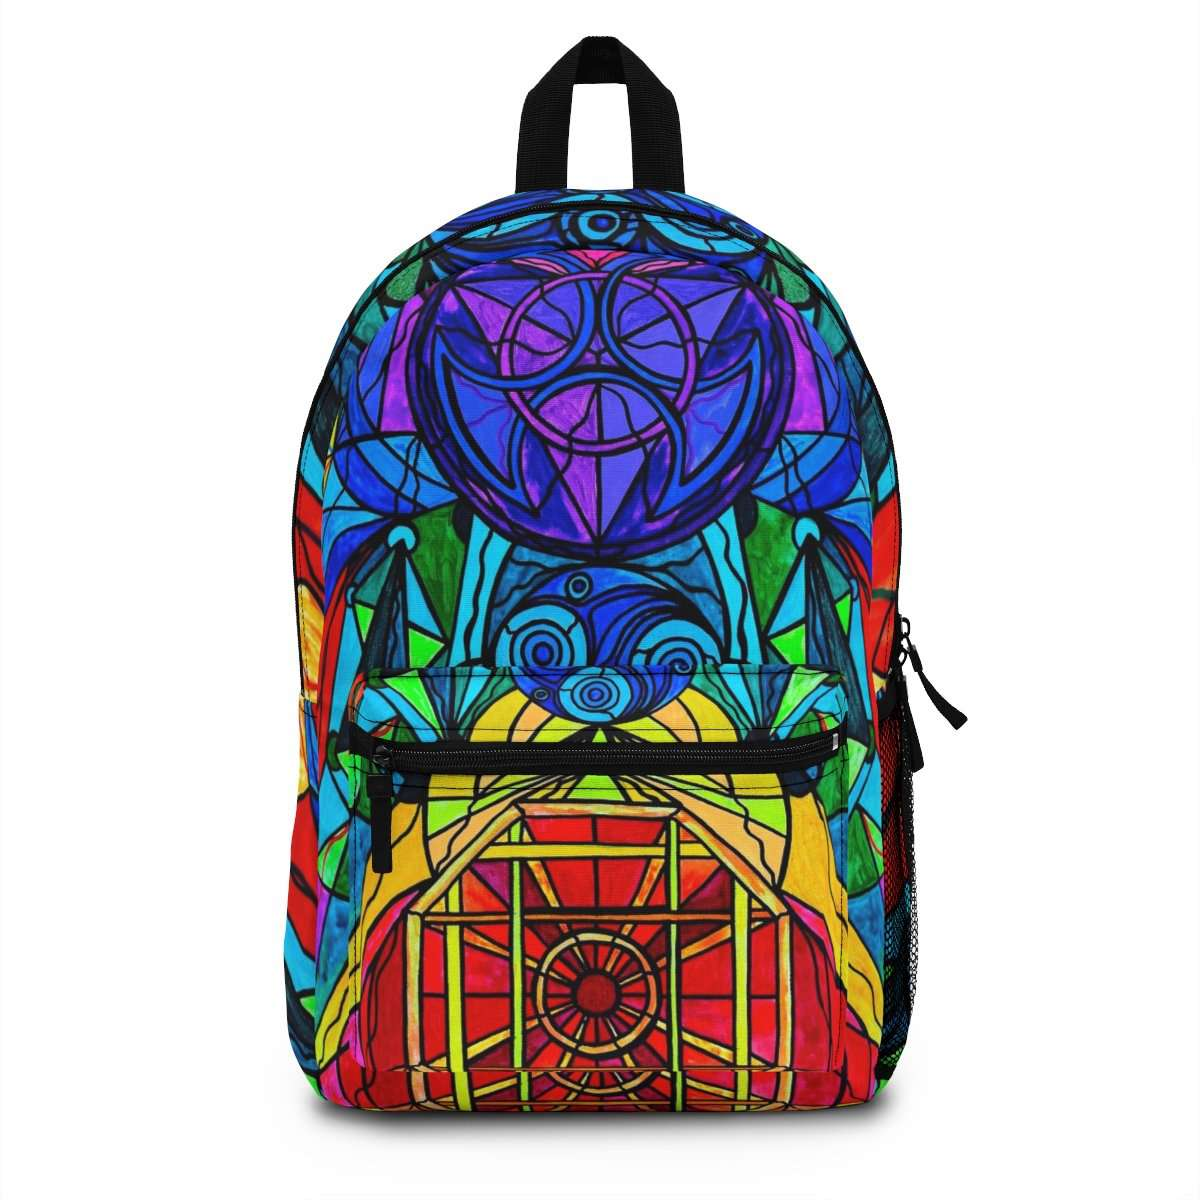 Arcturian Conjunction Grid - AOP Backpack